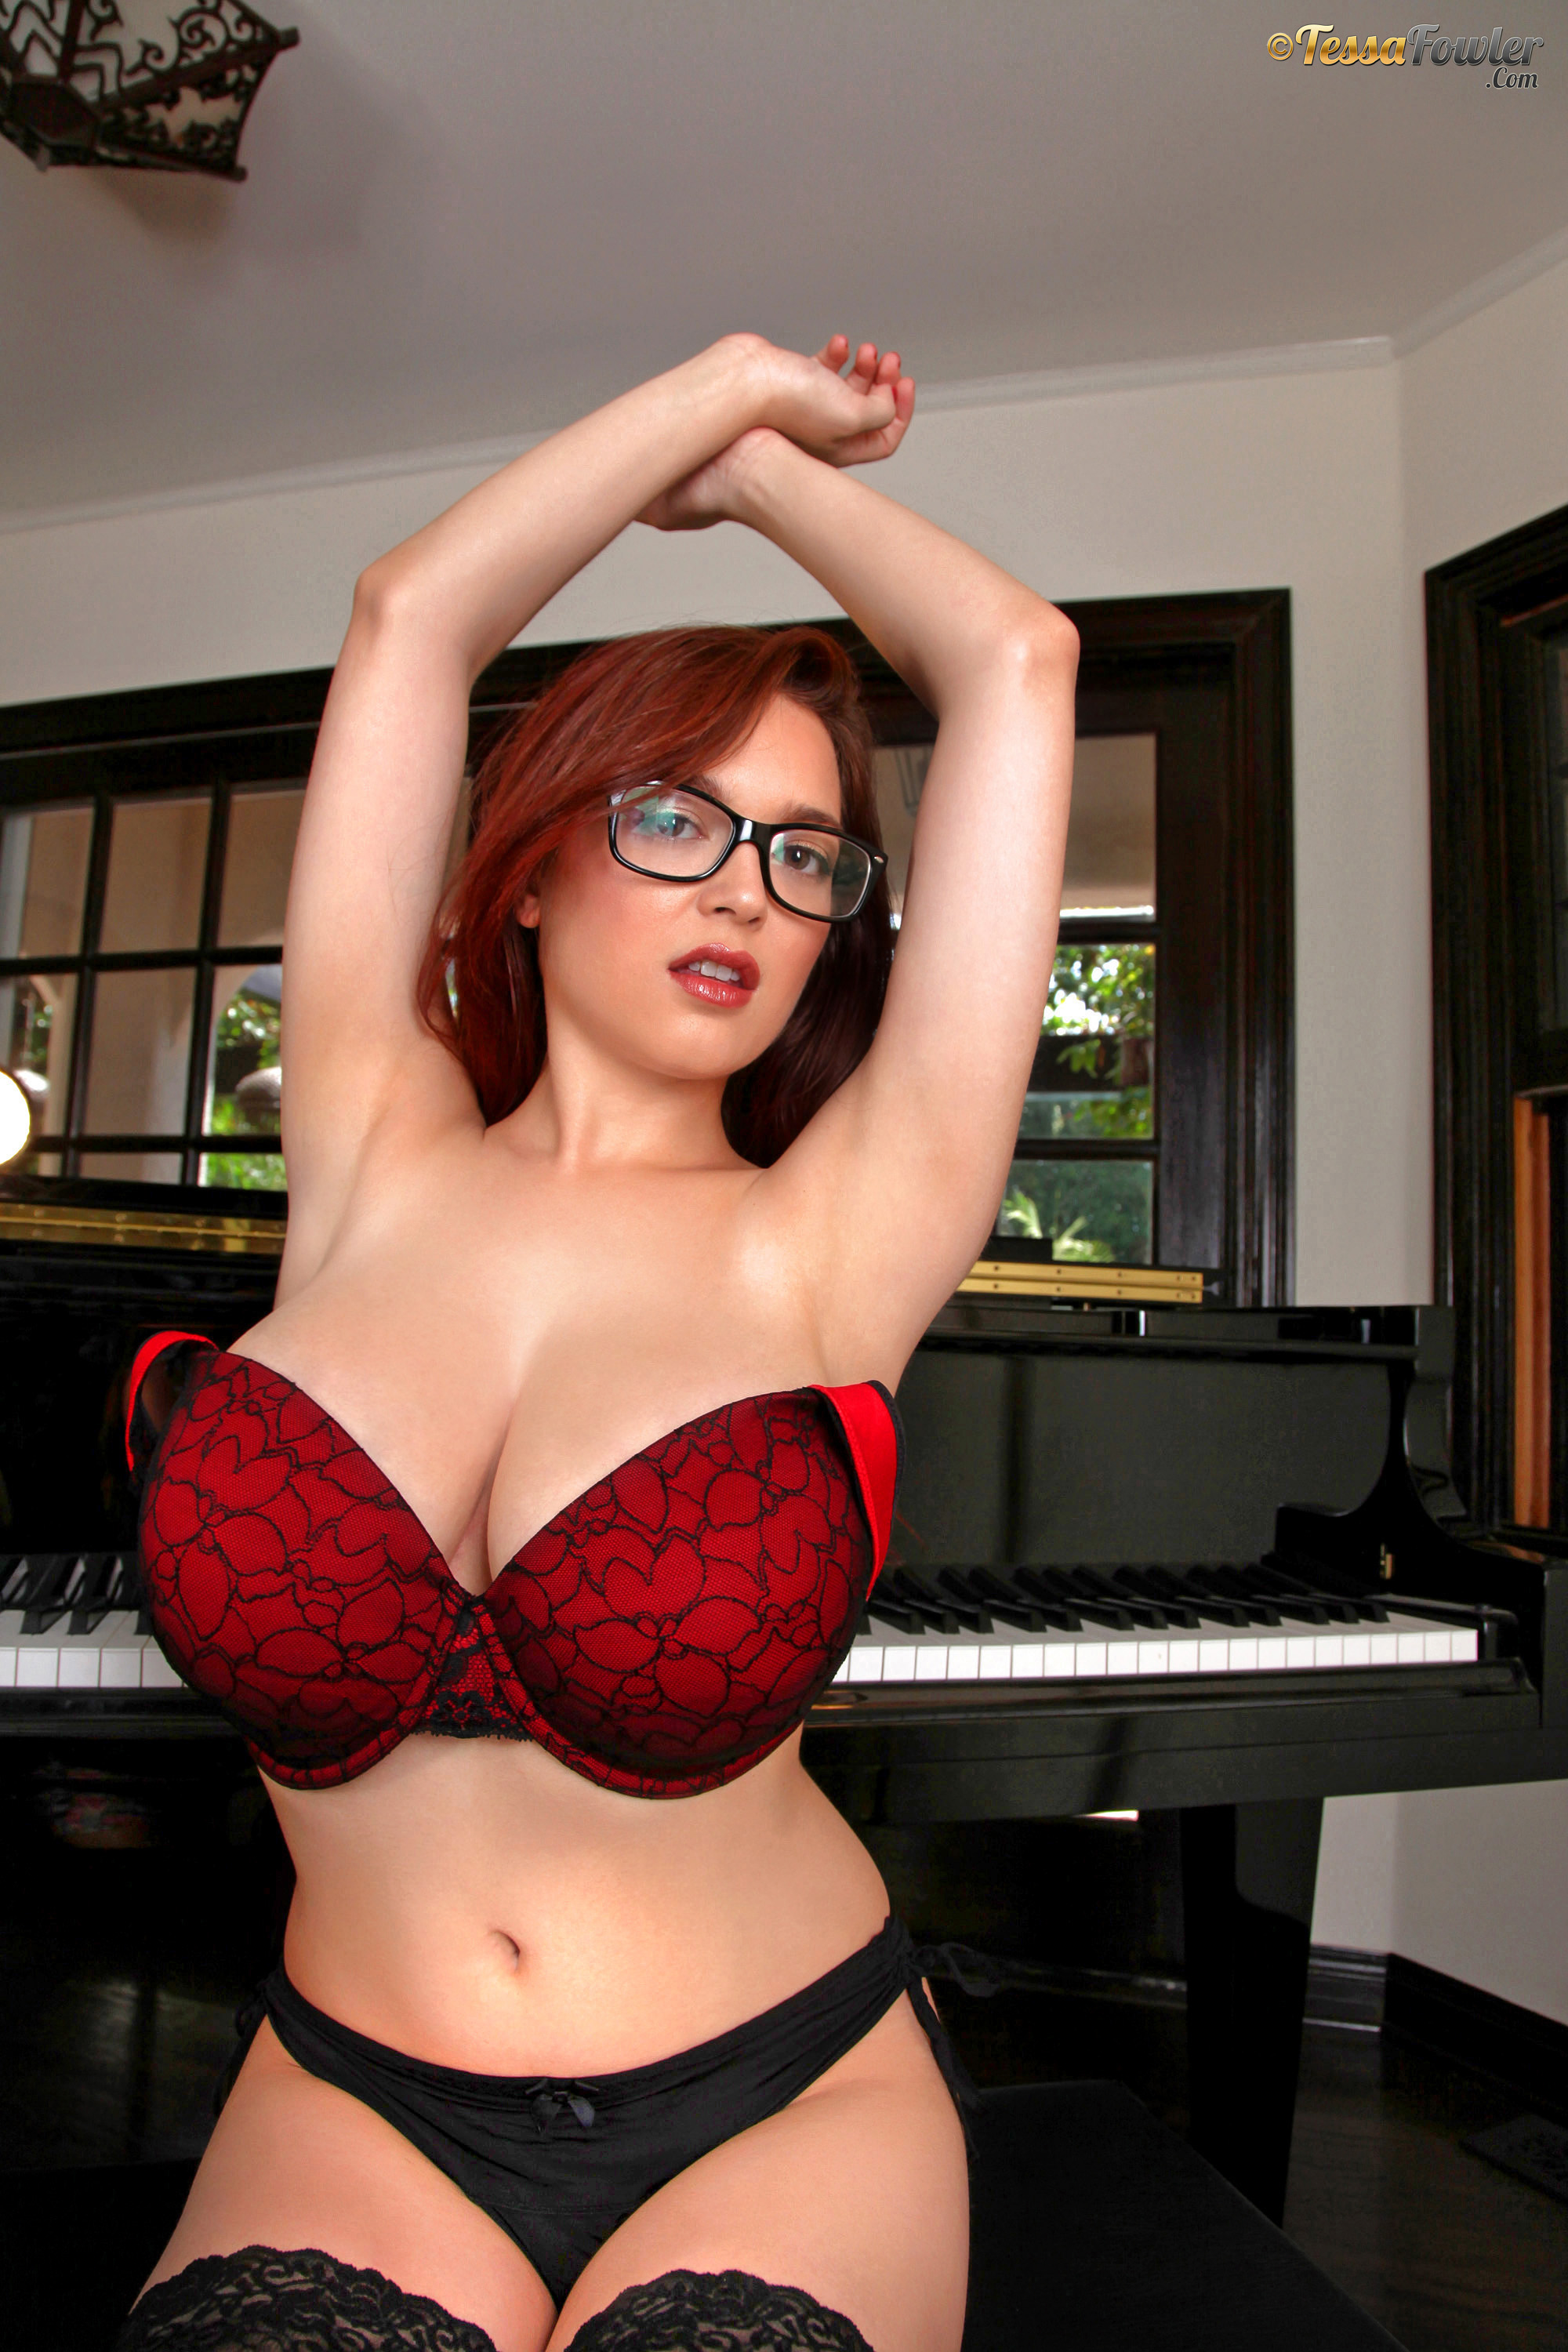 Tessa Fowler Big Boobs Red Bra Stockings and a Piano